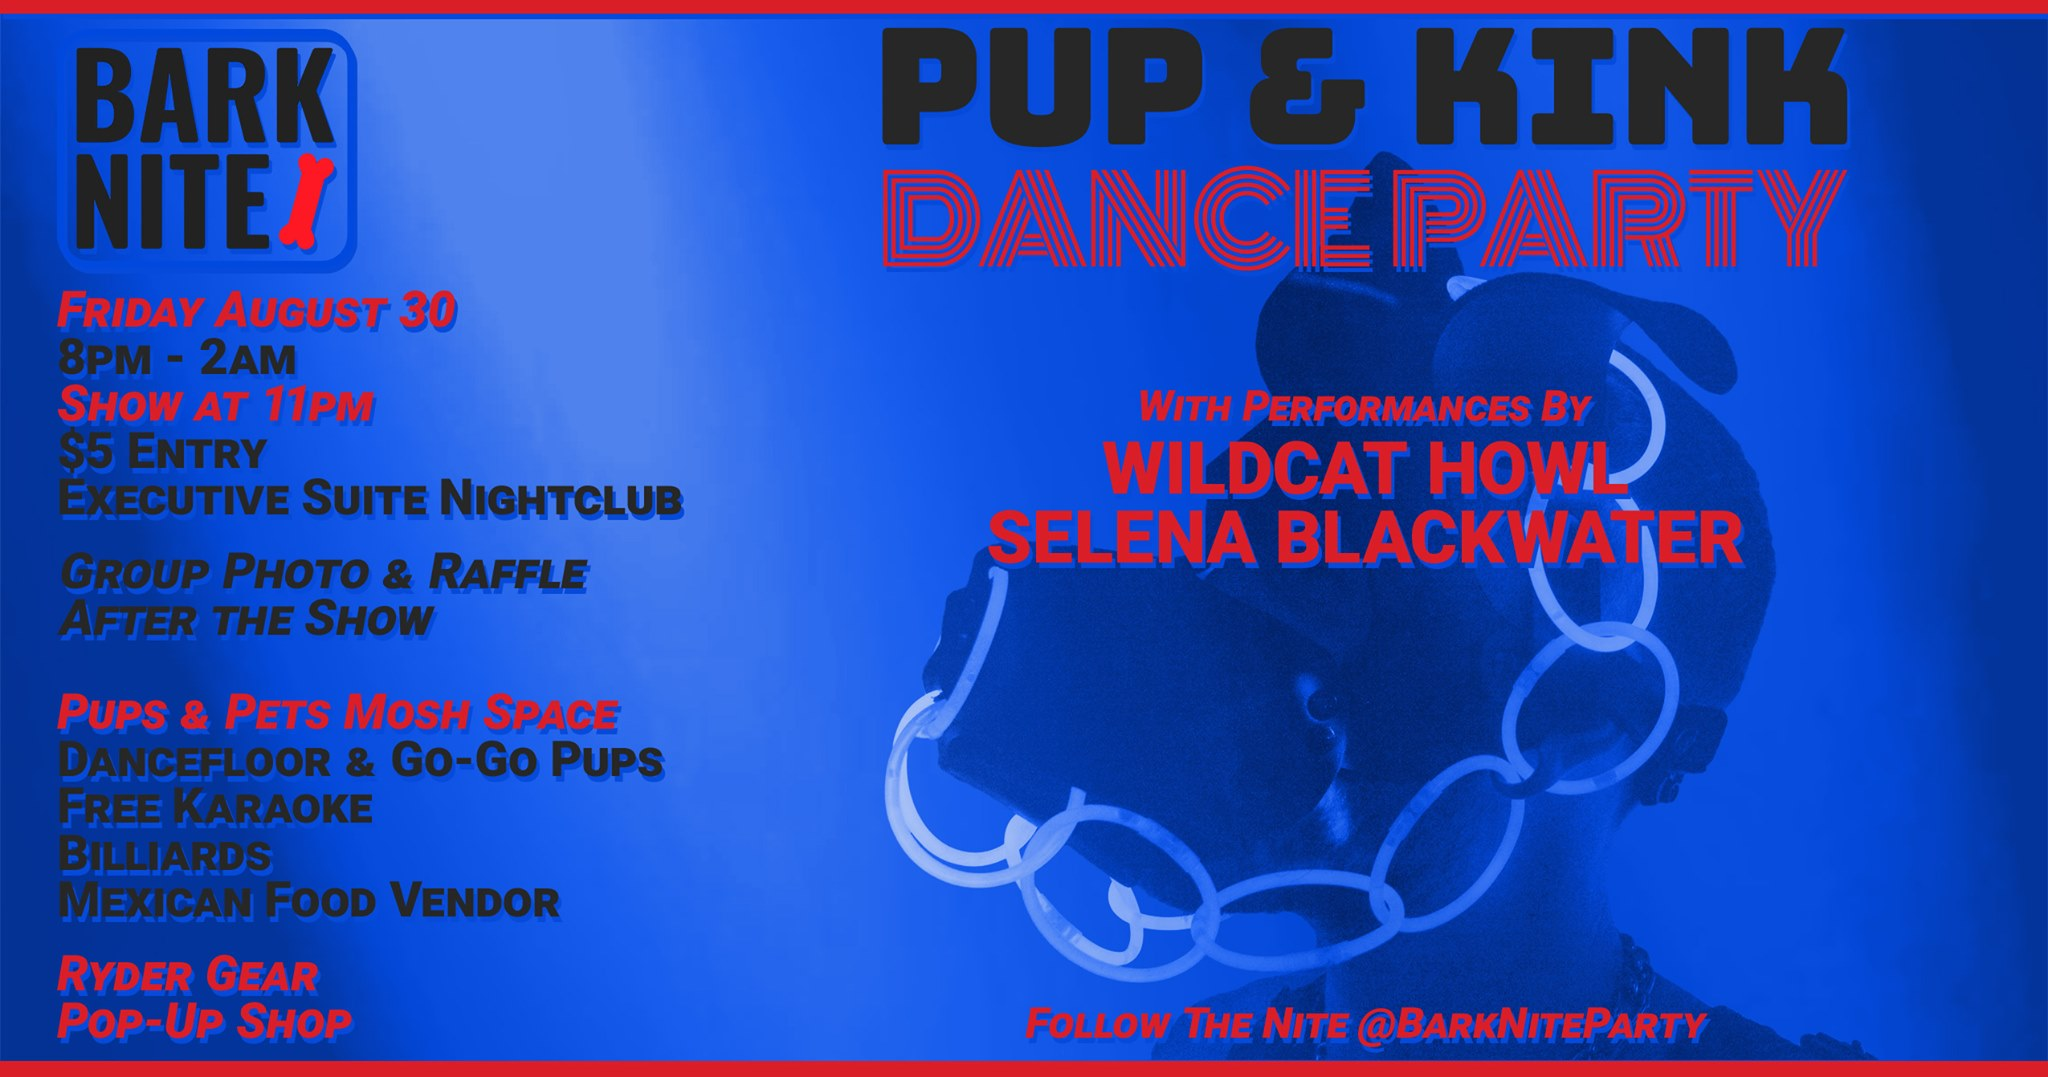 BarkNite! Pup Play Dance Party